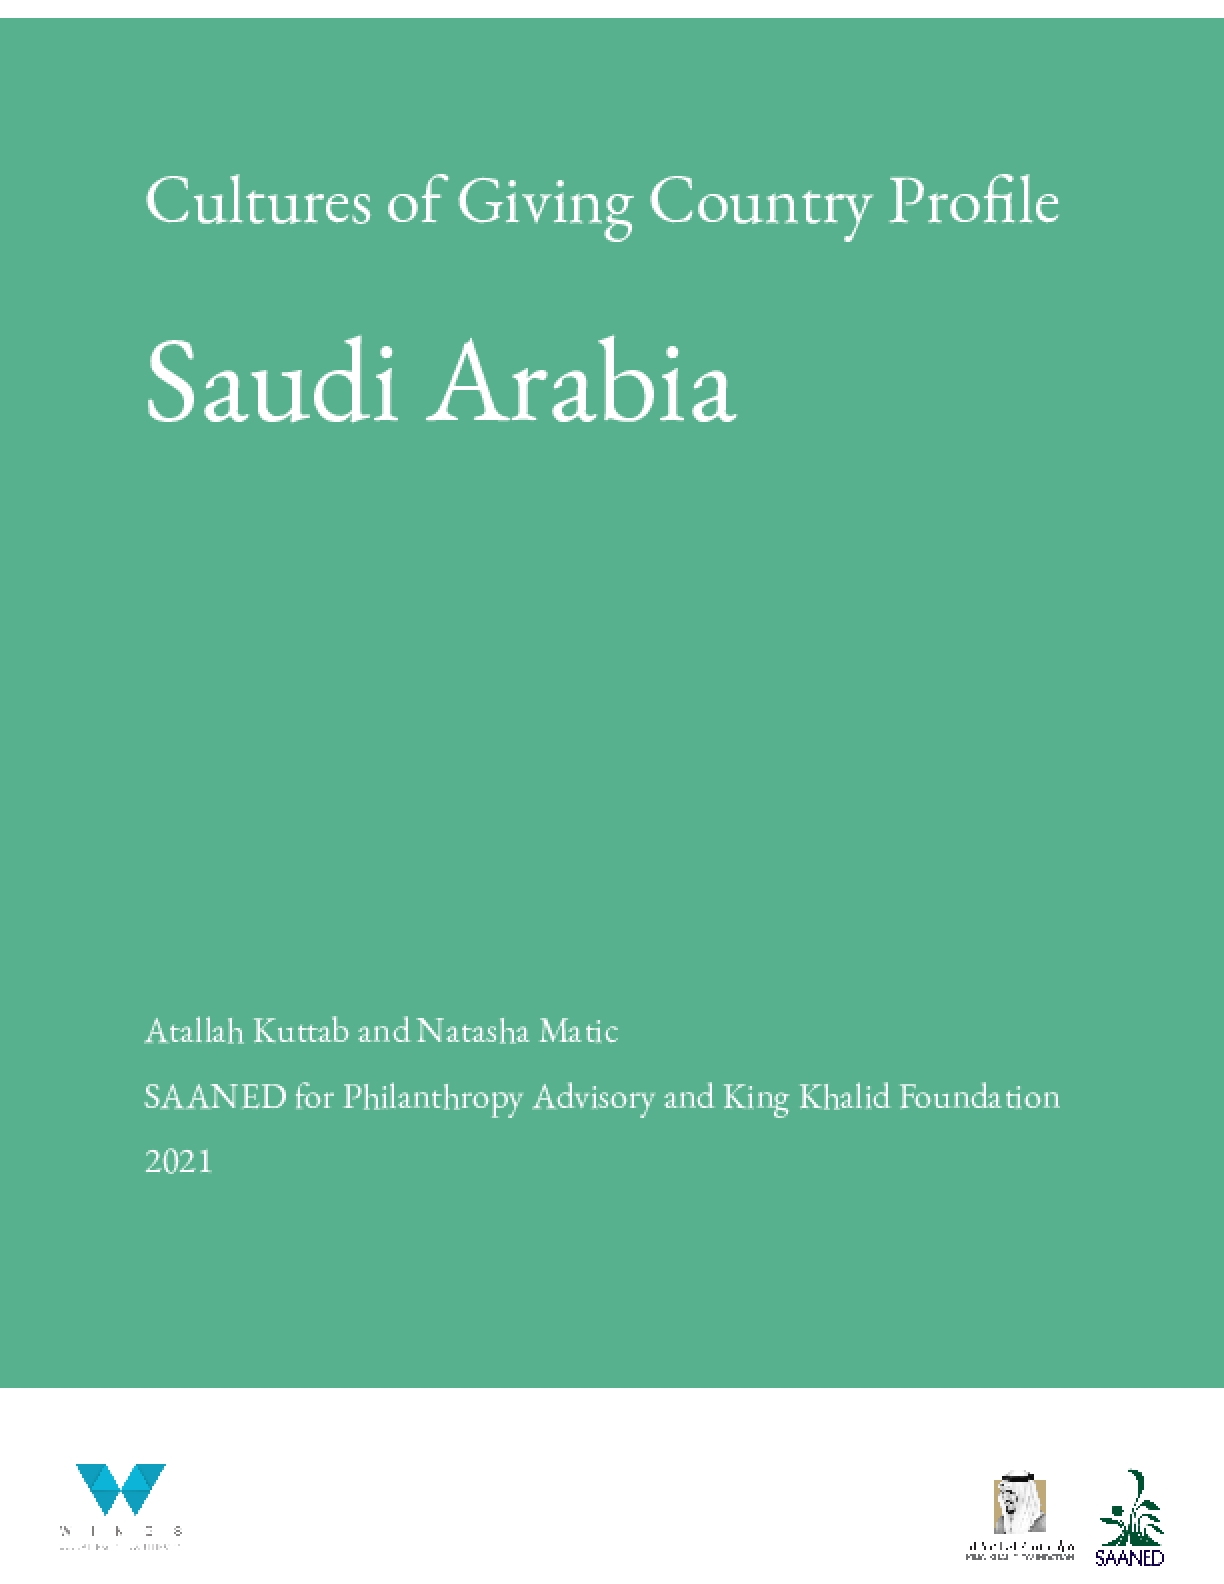 Cultures of Giving Country Profile: Saudi Arabia